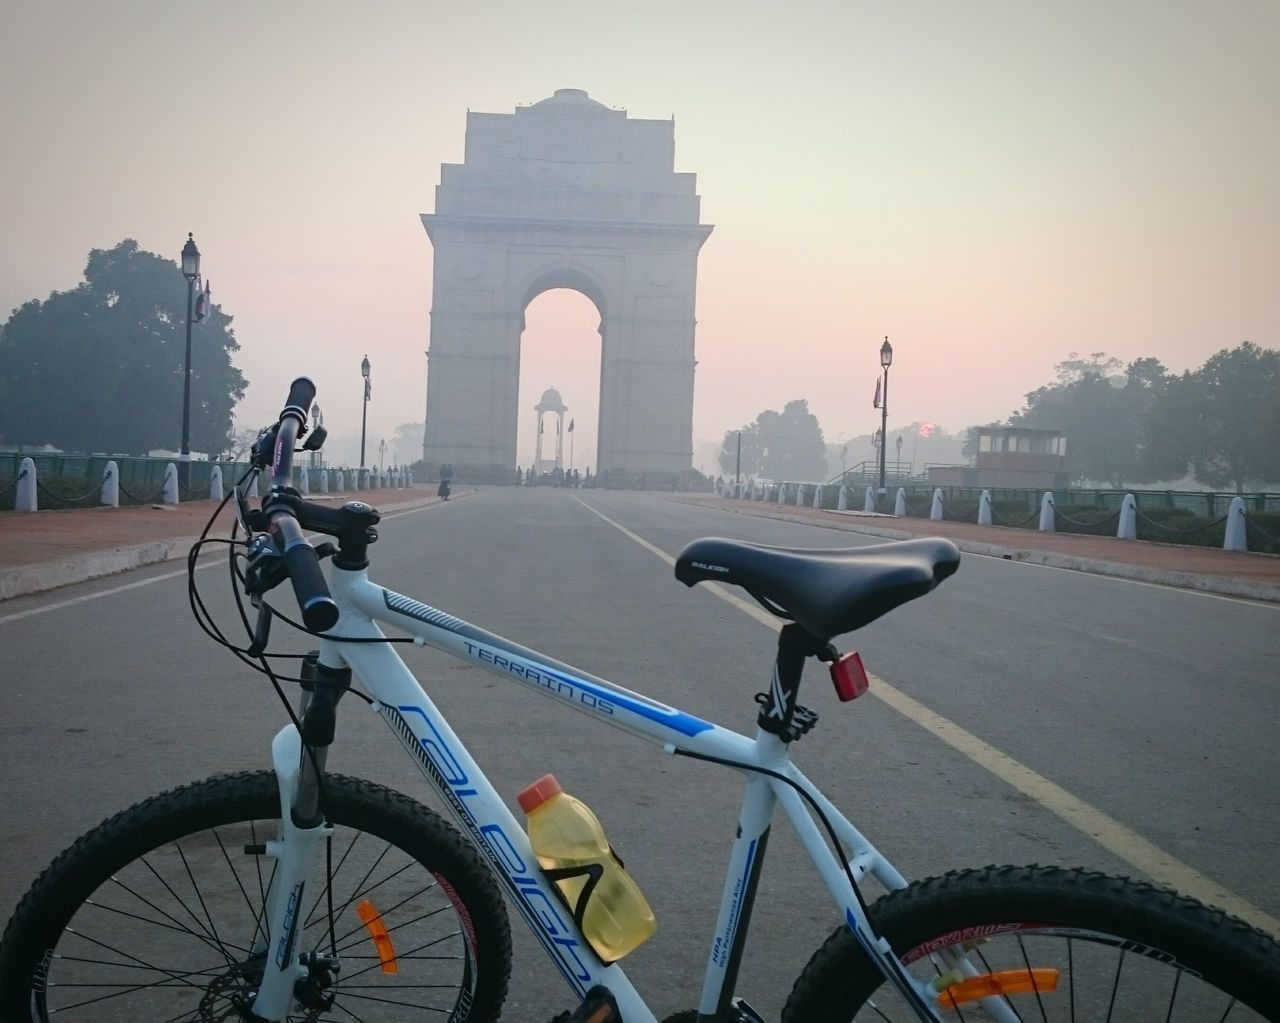 bicycle, transportation, mode of transport, architecture, land vehicle, built structure, travel, travel destinations, sunset, outdoors, triumphal arch, city, building exterior, day, sky, no people